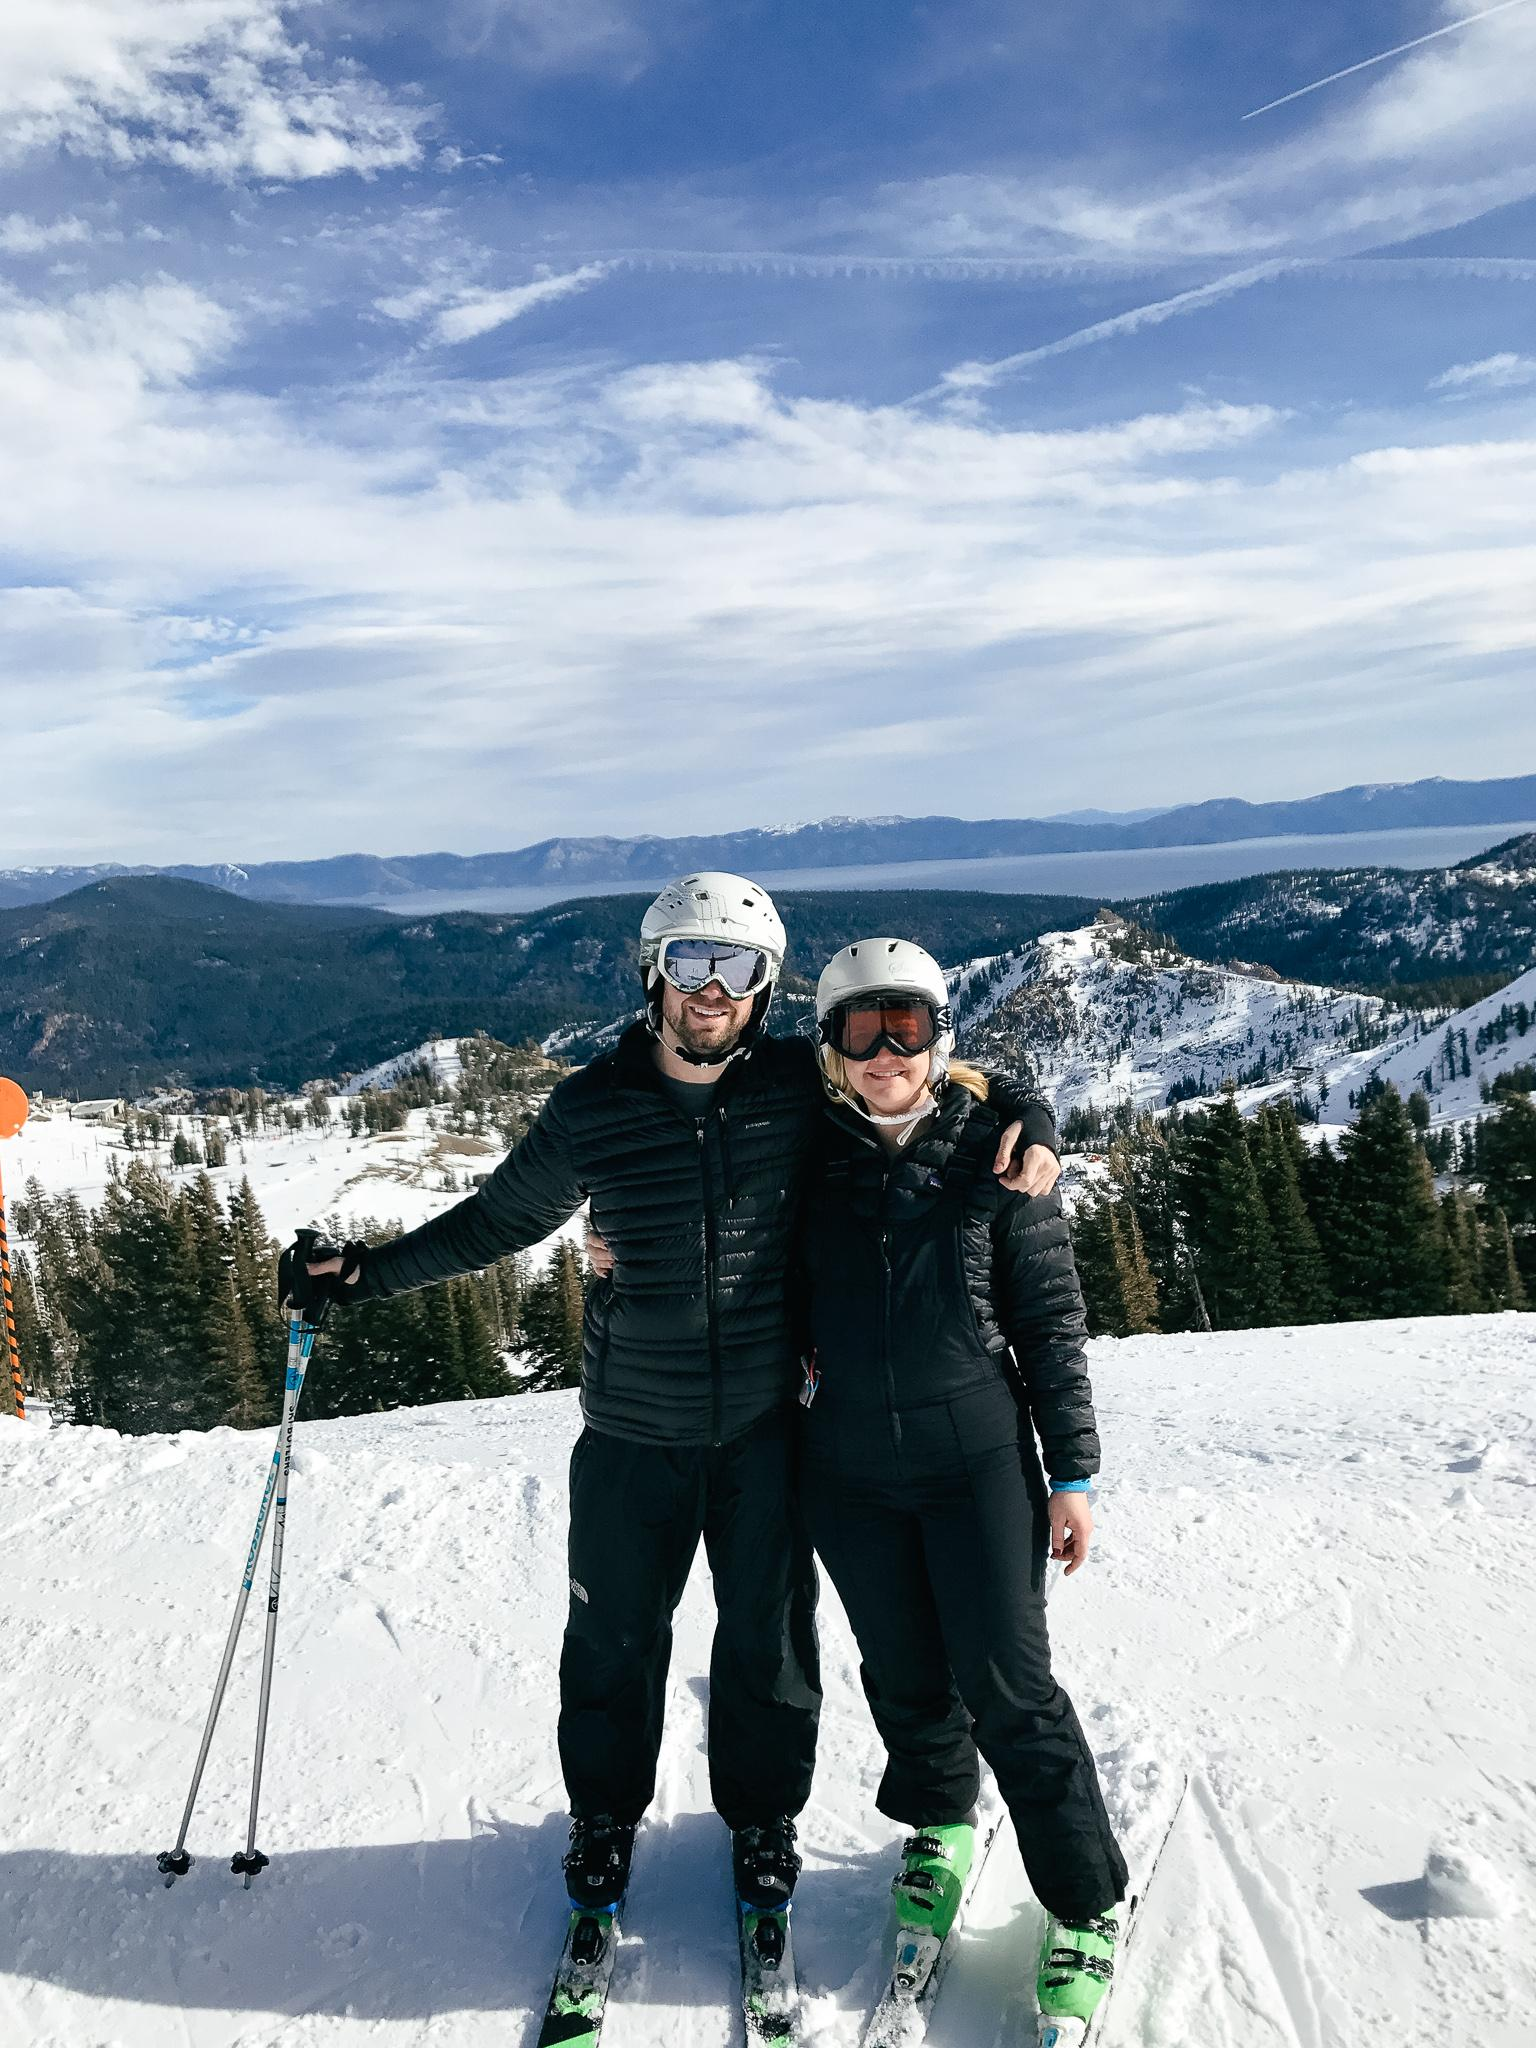 Skiing in Lake Tahoe in December 2017.